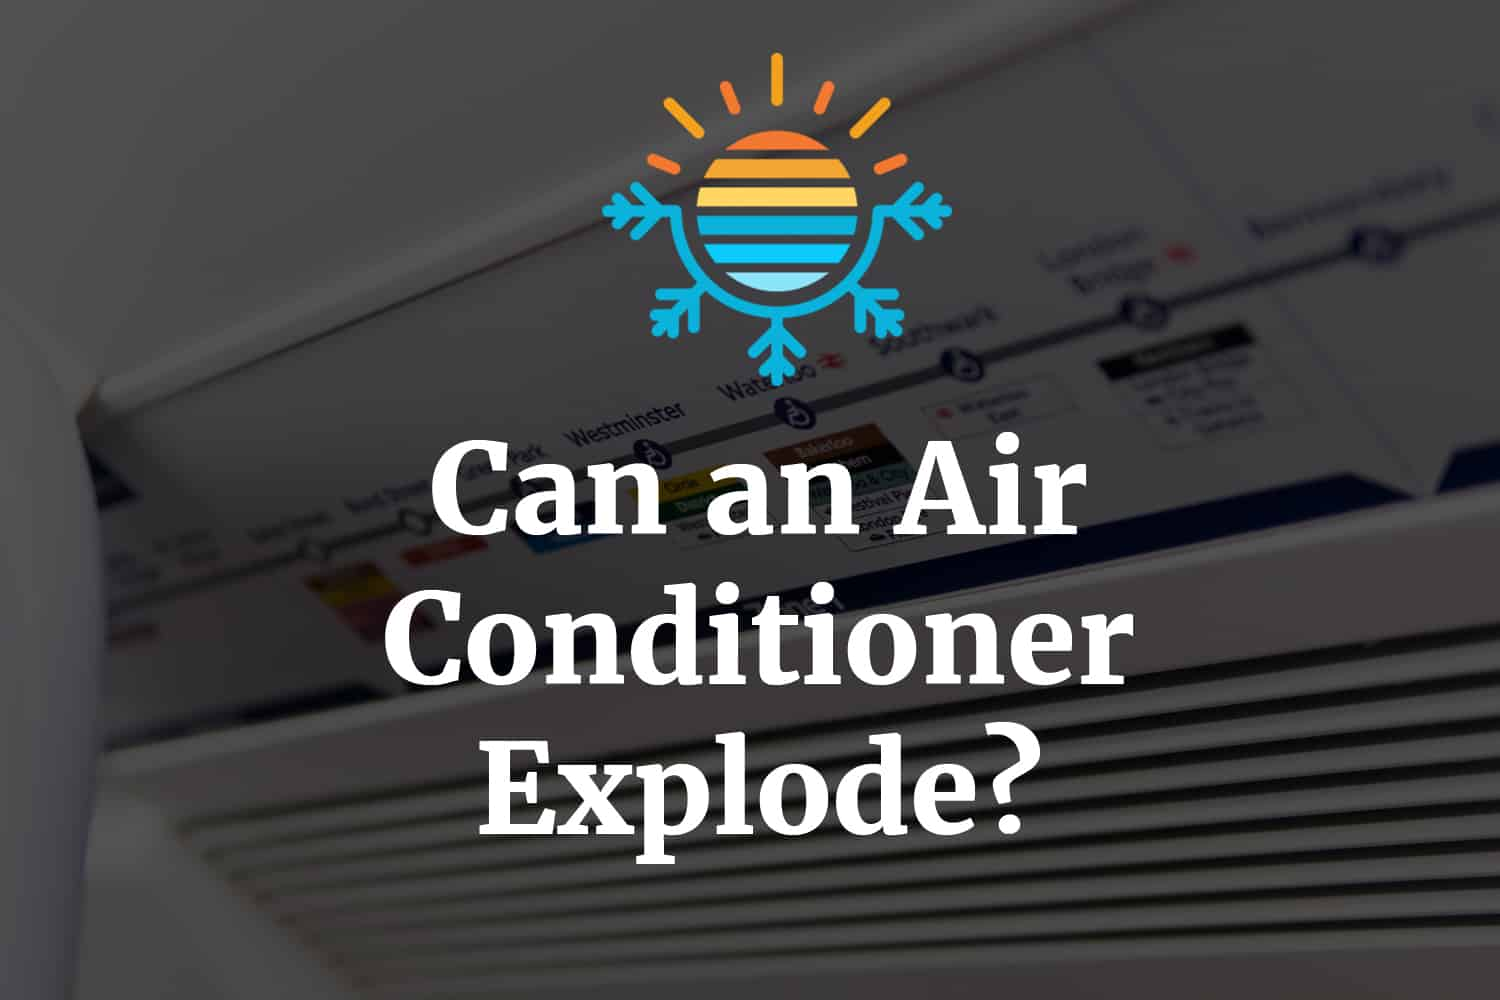 Can an Air Conditioner Explode?